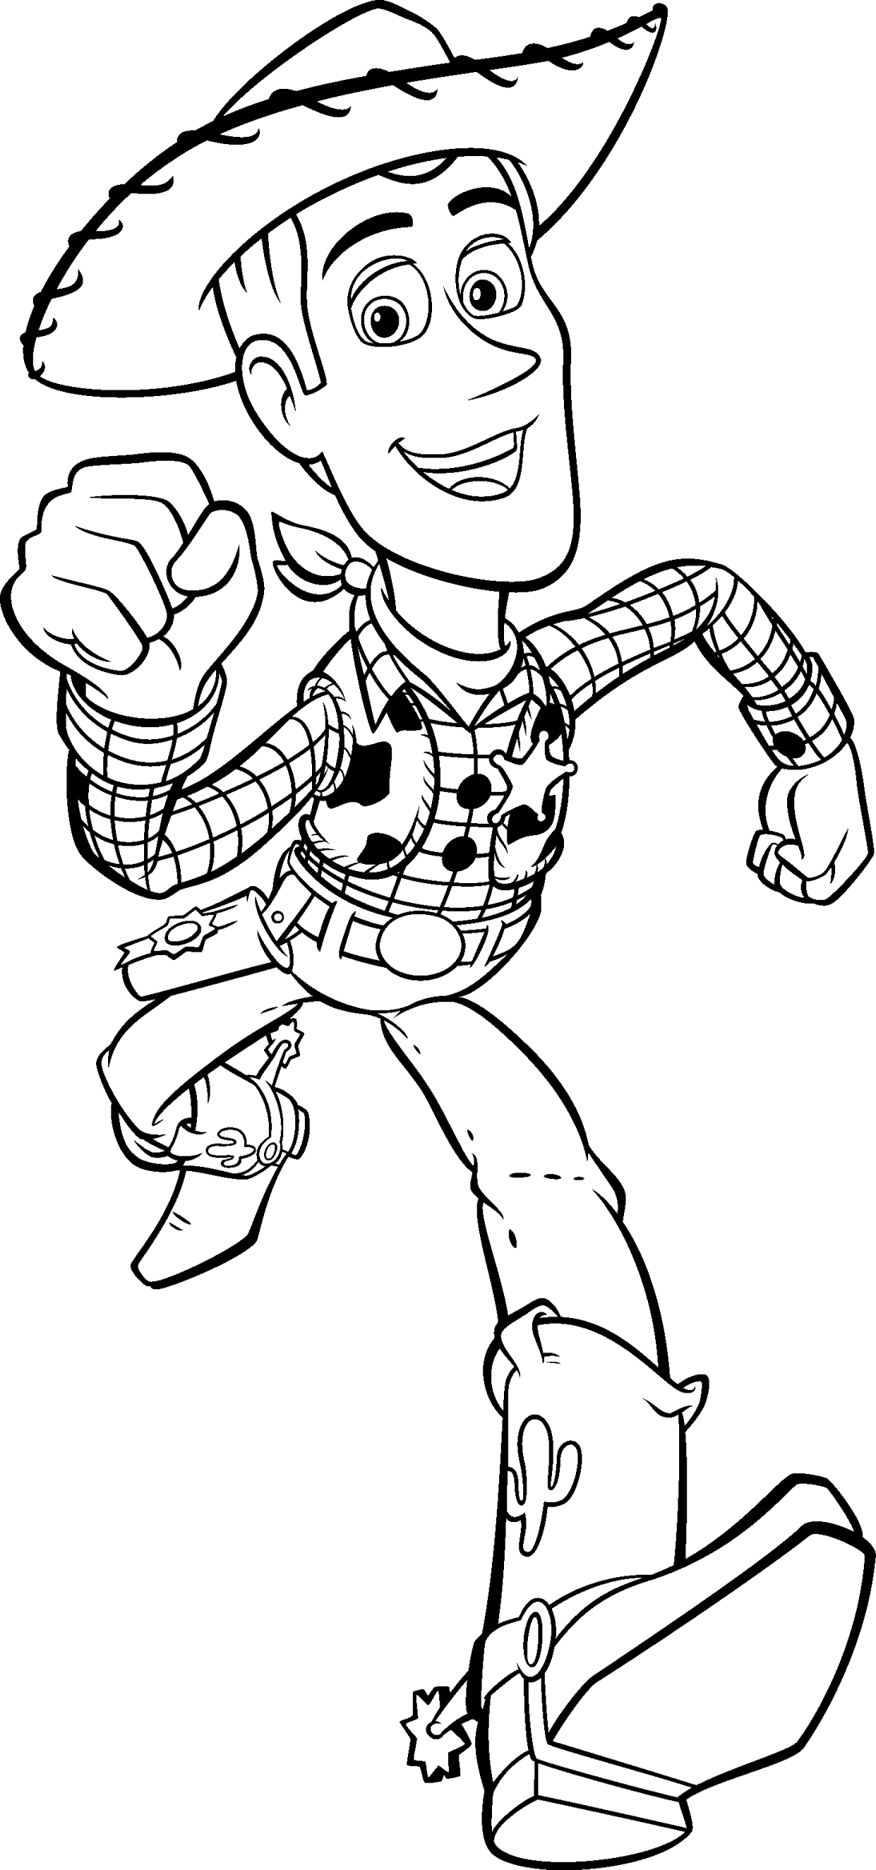 Pin By Crafts Hobbies And Diy Proje On Coloring Pages For Kids Toy Story Coloring Pages Disney Coloring Pages Cartoon Coloring Pages